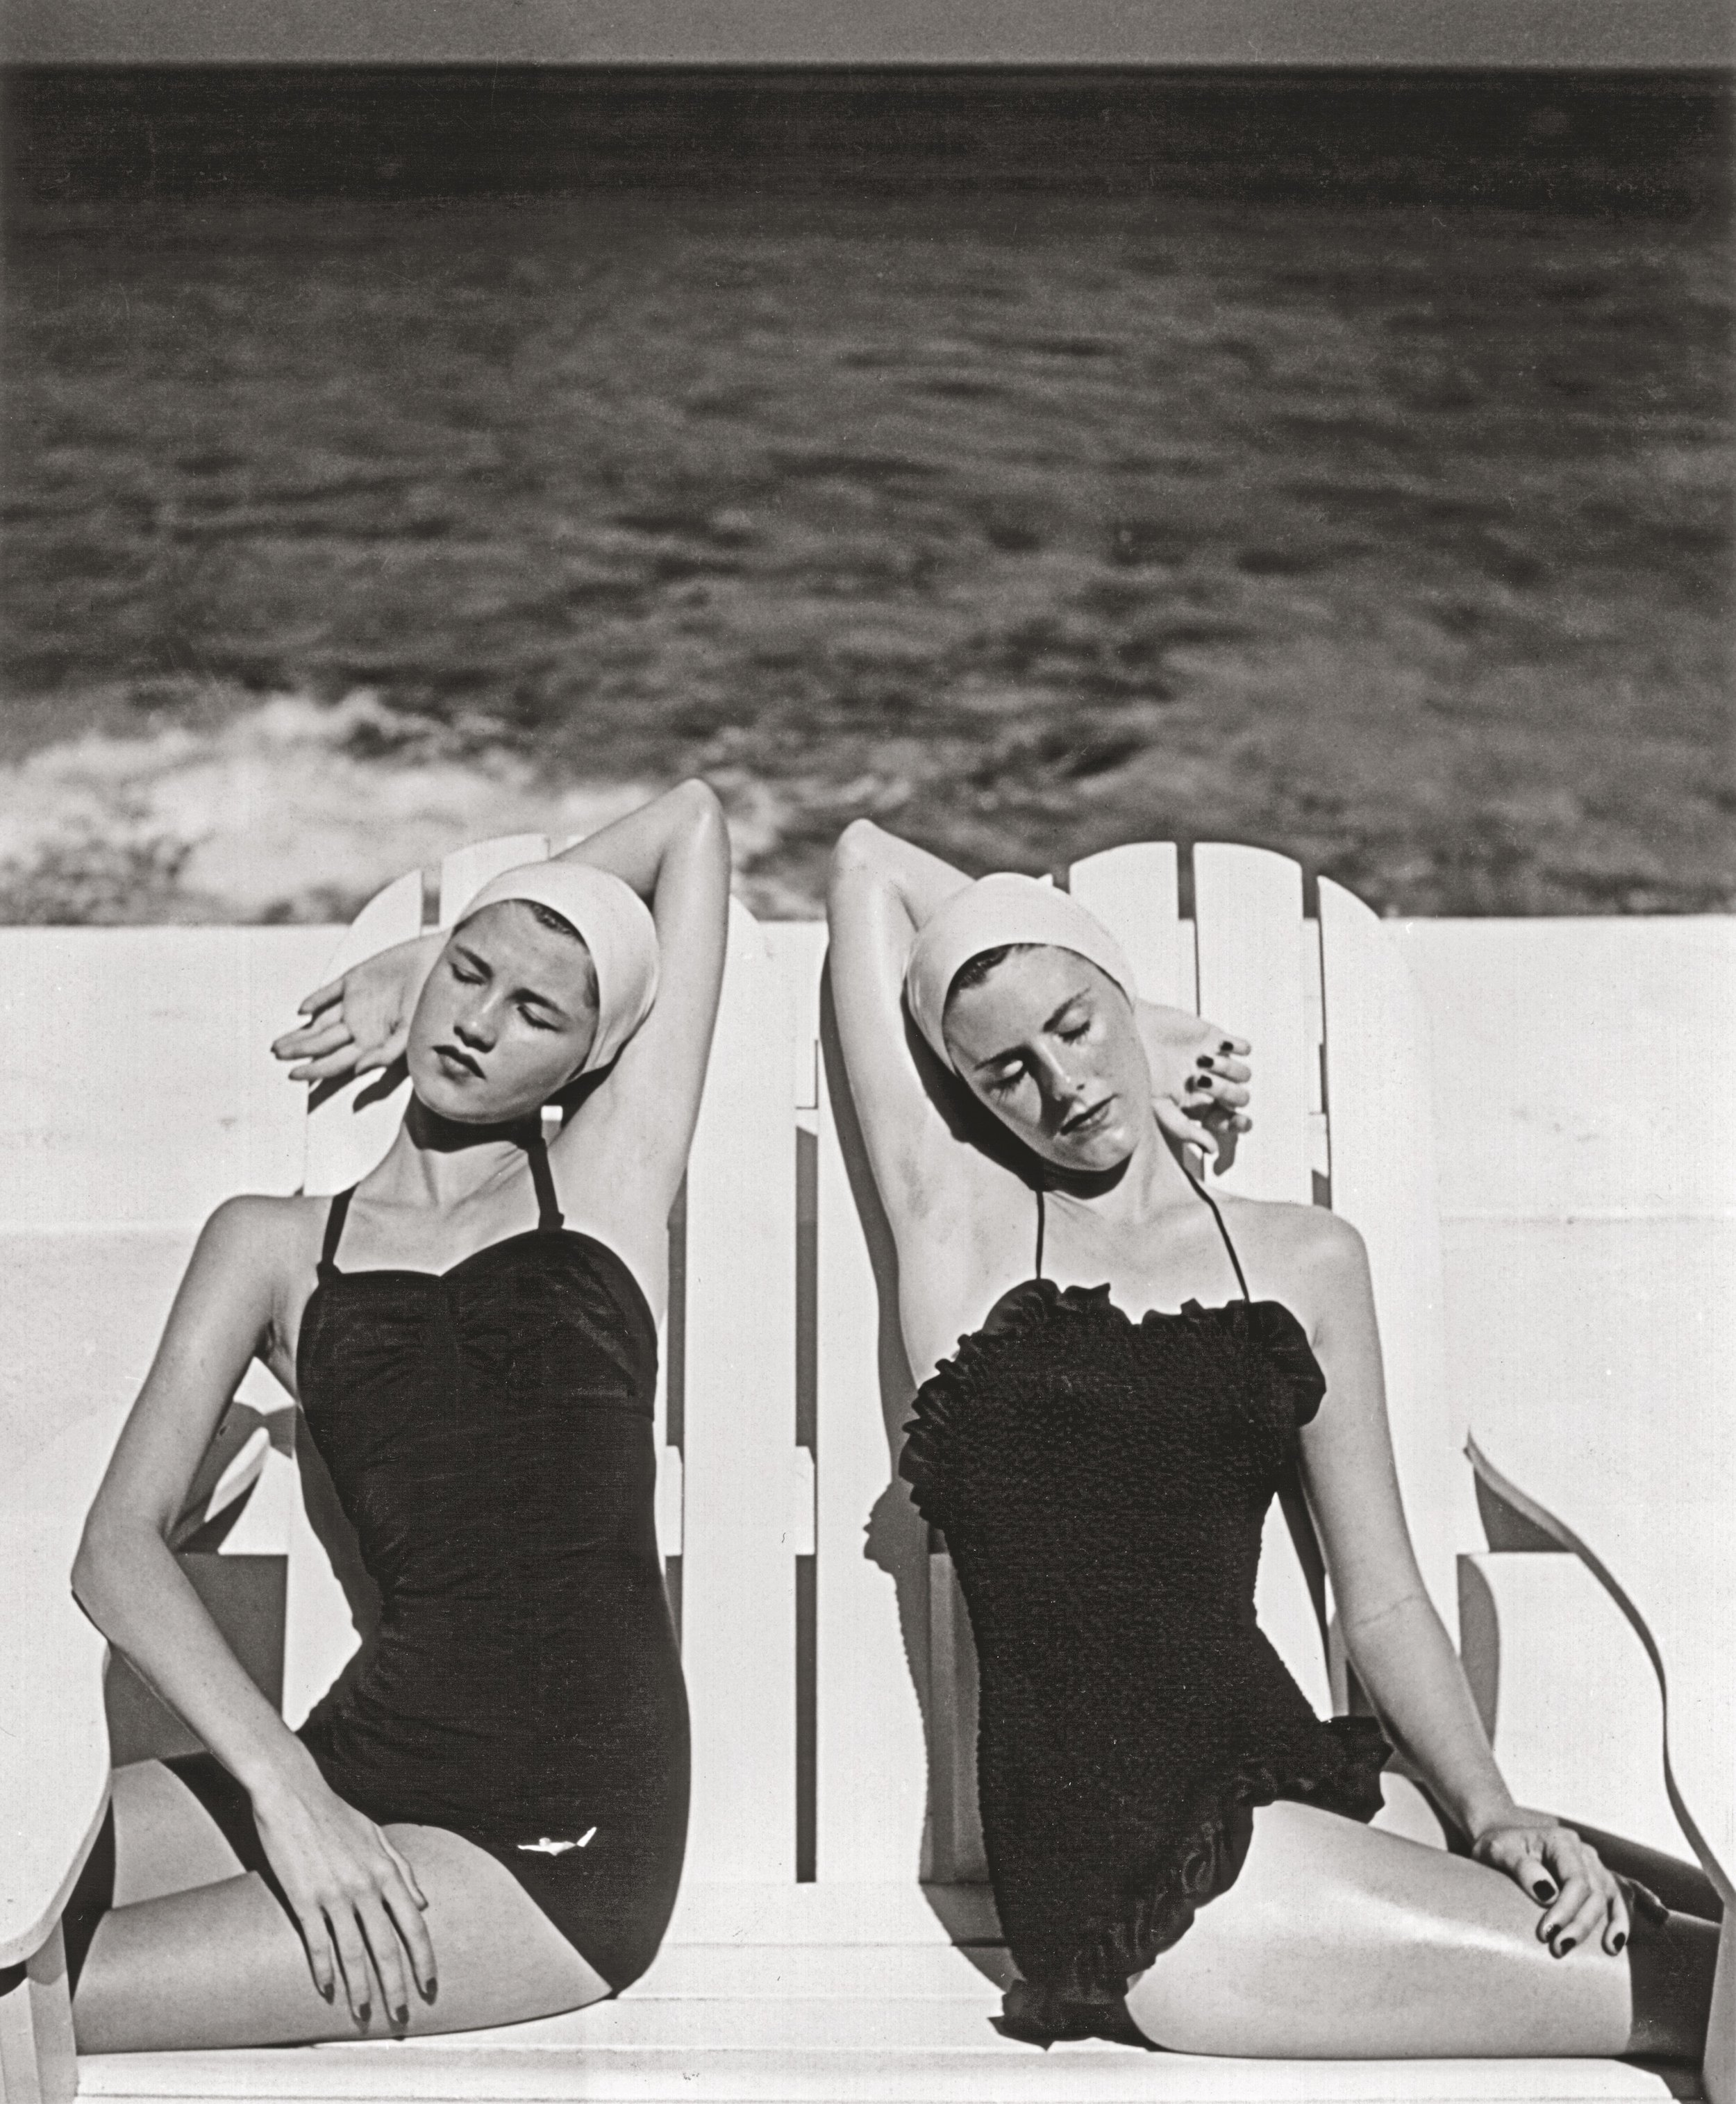 wins at the Beach, Nassau  (1949). Photograph by Louise Dahl-Wolfe. Collection Staley Wise Gallery. Copyright 1989 Center for Creative Photography, Arizona Board of Regents. Image courtesy the Fashion and Textile Museum, London.